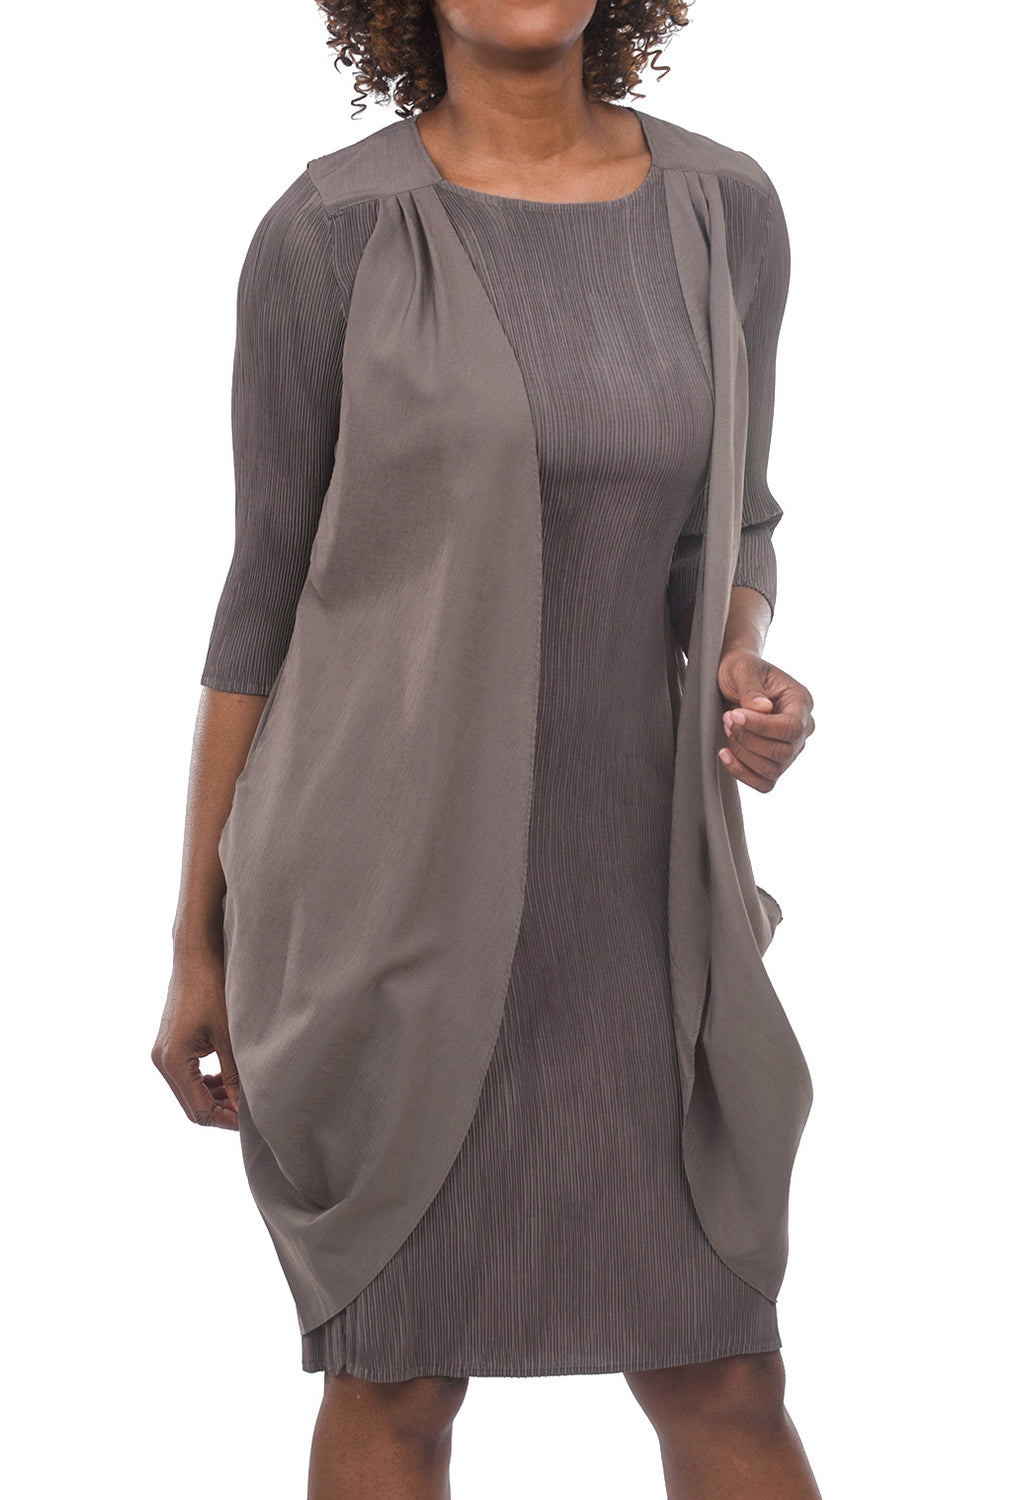 Alquema Topper Micropleat Dress, Mocha One Size Mocha